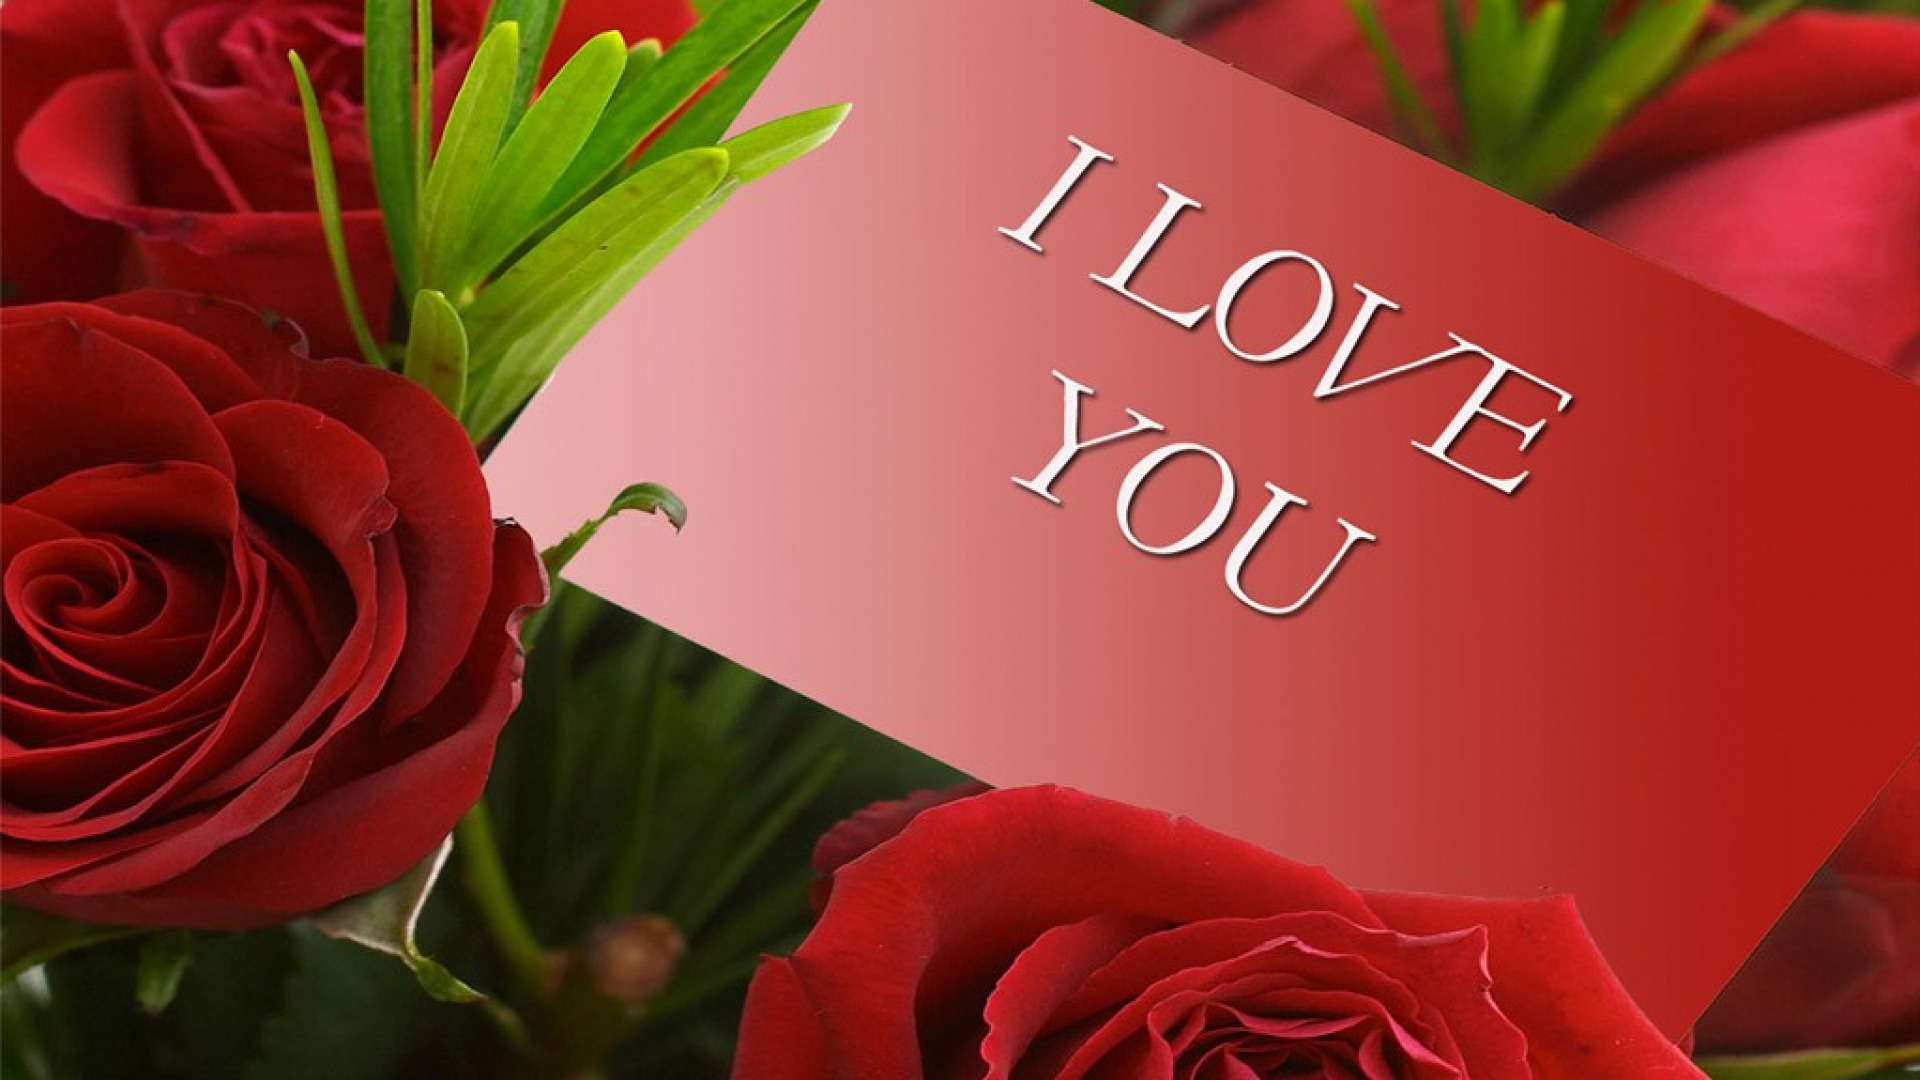 Download-download-hd-of-i-love-you-HD-Download-download-hd-of-i-love-you-HD-wallpaper-wpc5804283